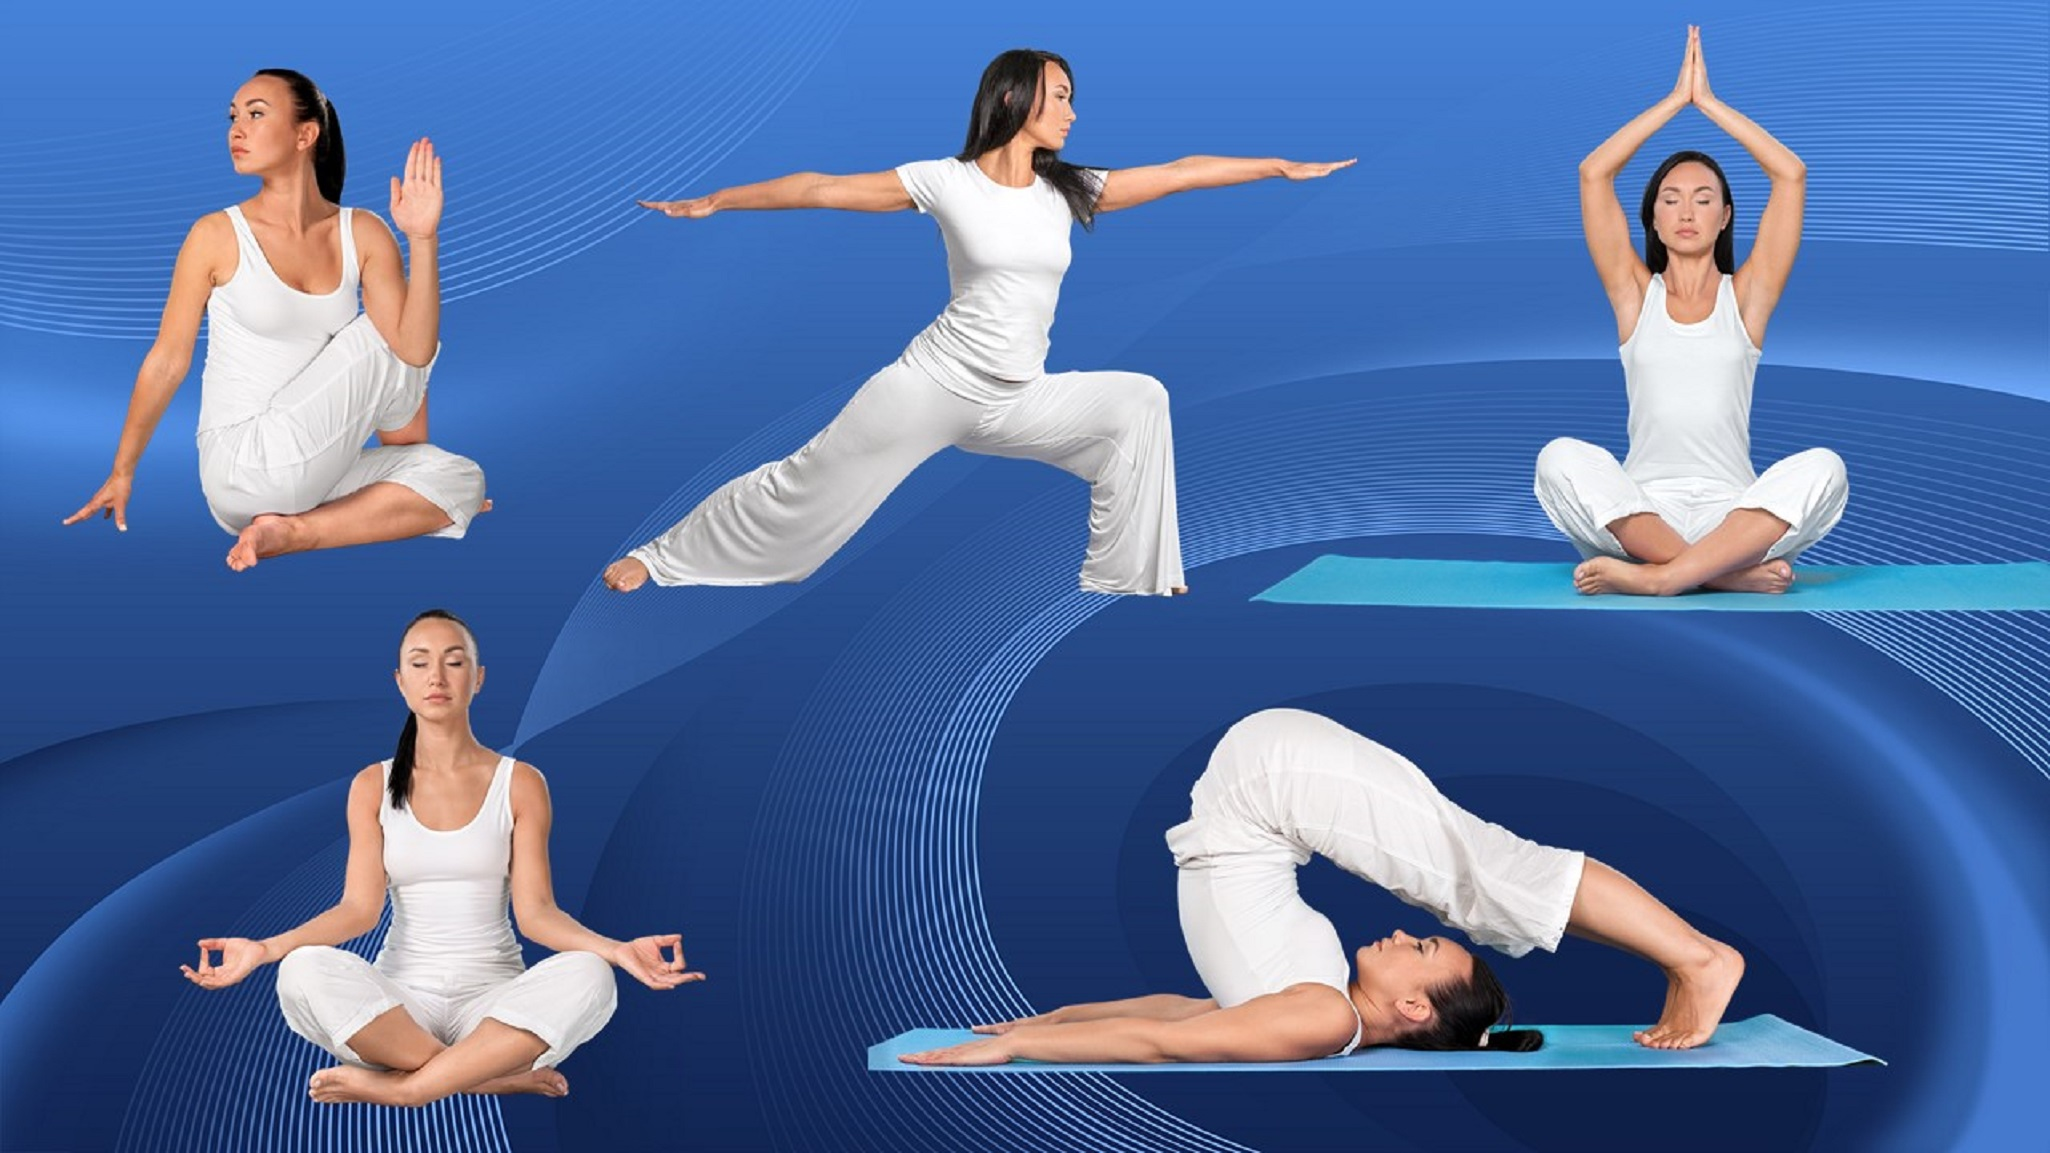 Online Understanding Yoga: Education On The Benefits & Styles Course by Eduonix